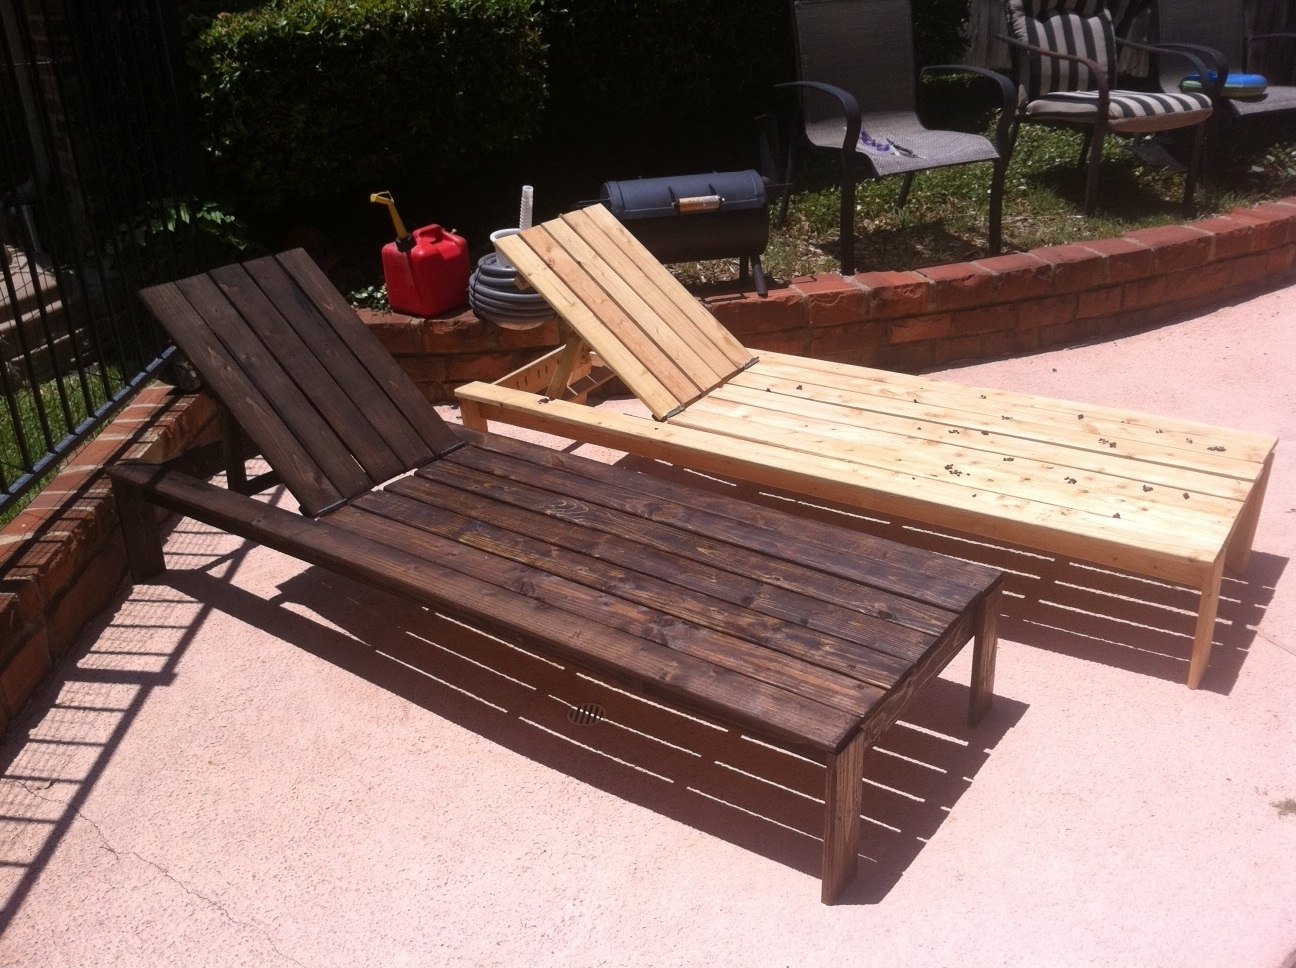 Diy Pool Chaise Lounge Chairs — Bed And Shower : Decorating Pool For Most Popular Diy Outdoor Chaise Lounge Chairs (View 2 of 15)